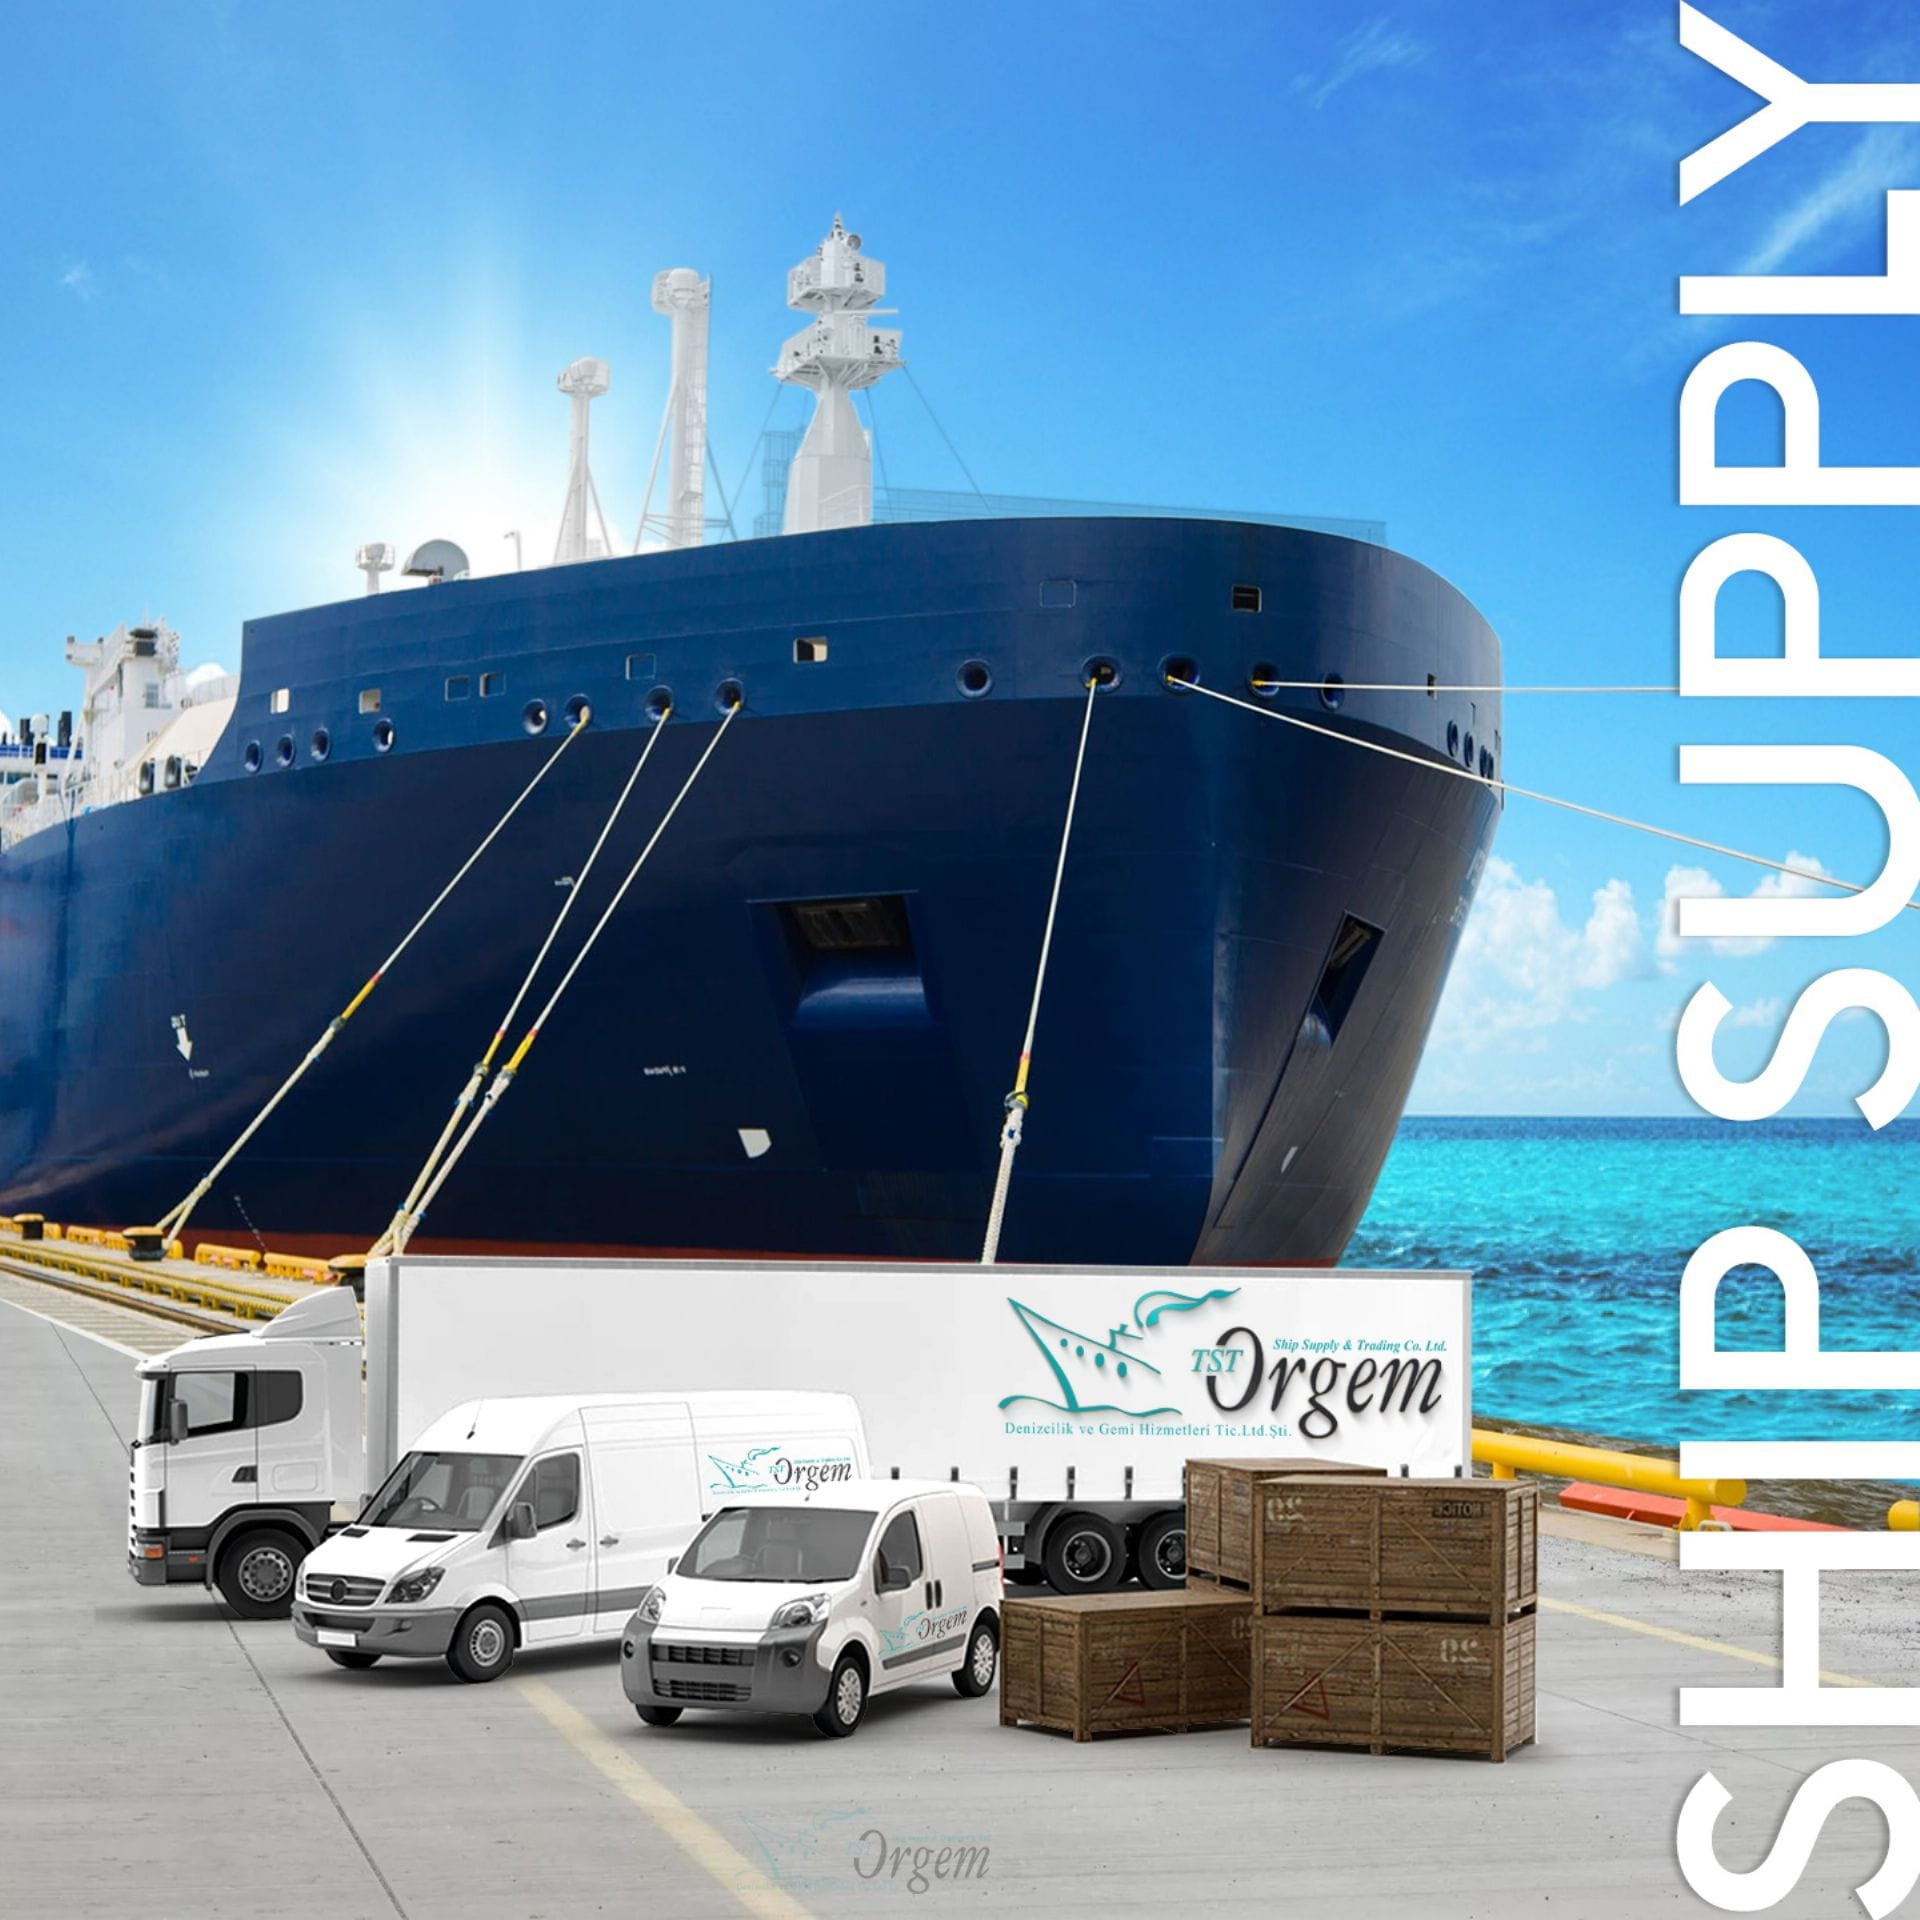 TST Orgem Ship Provision Supply from Istanbul to the World!